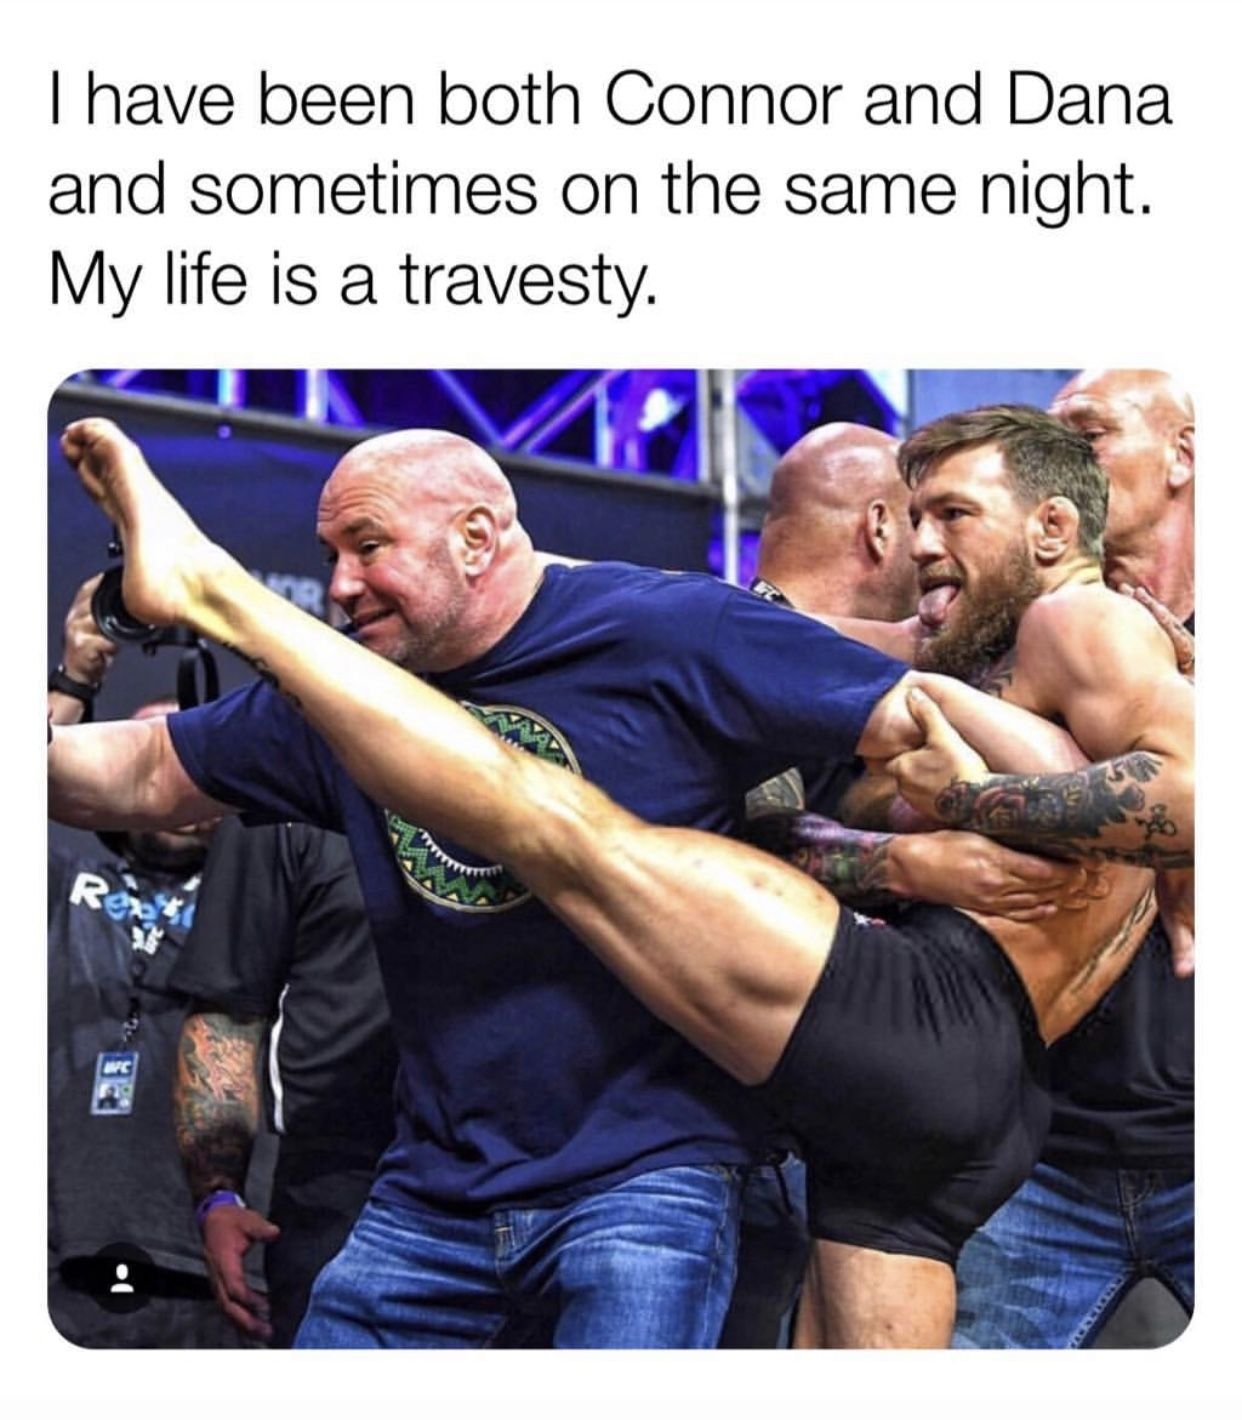 Pin by Laura on Memes Laughter therapy, Conor mcgregor, Ufc